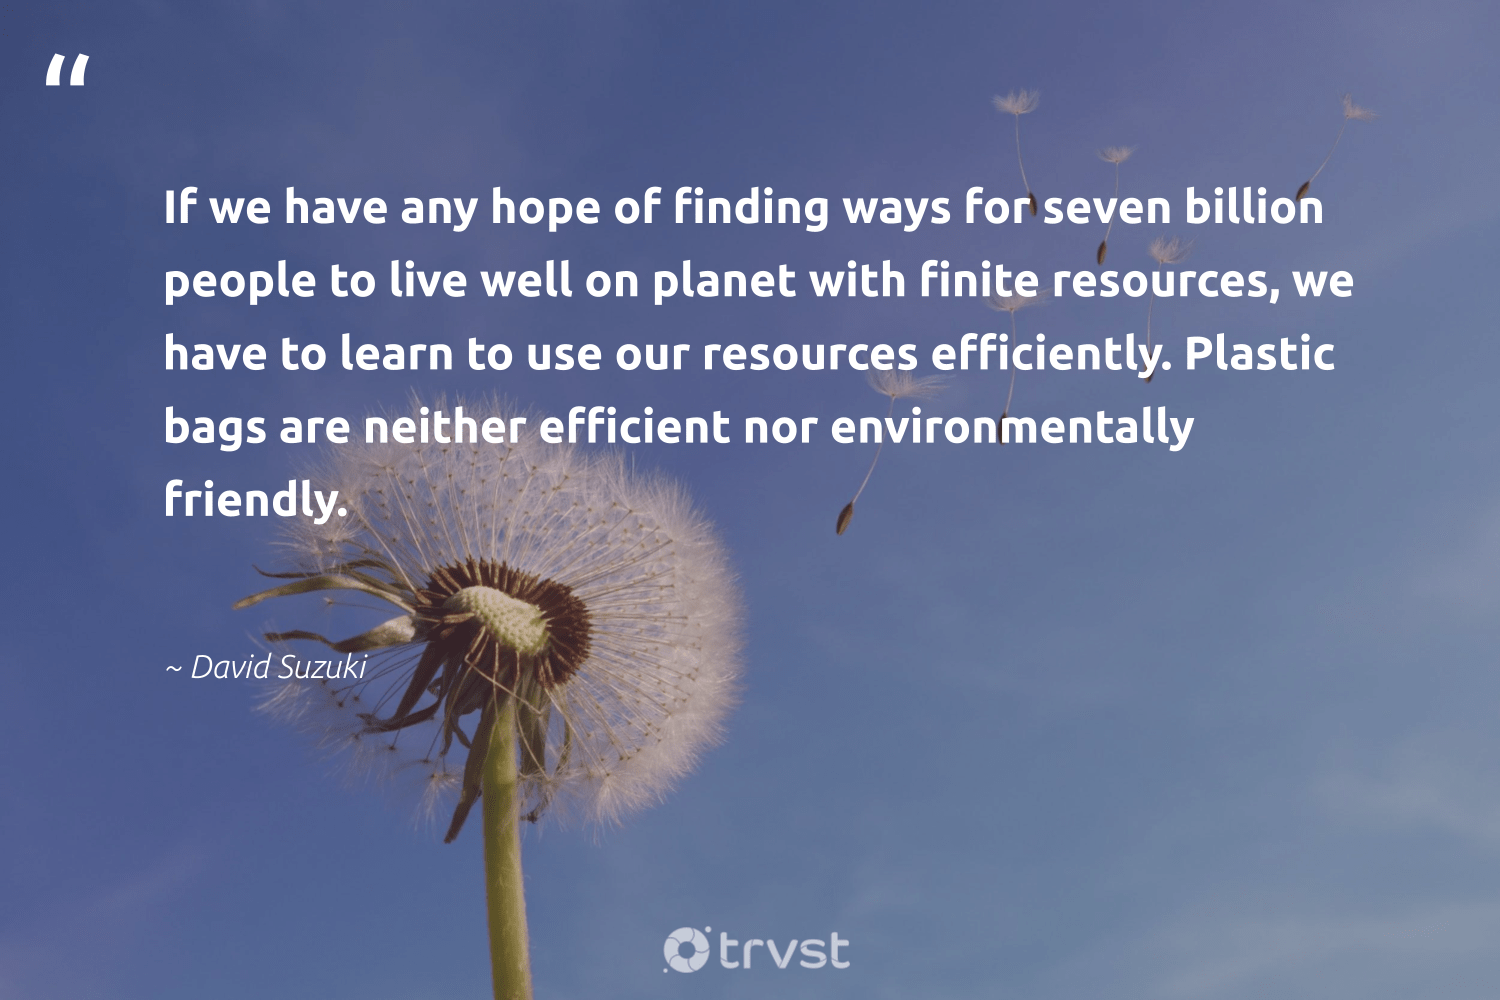 """""""If we have any hope of finding ways for seven billion people to live well on planet with finite resources, we have to learn to use our resources efficiently. Plastic bags are neither efficient nor environmentally friendly.""""  - David Suzuki #trvst #quotes #plasticwaste #environmentallyfriendly #plastic #planet #hope #breakfreefromplastic #wasteless #trash #dogood #lessplastic"""